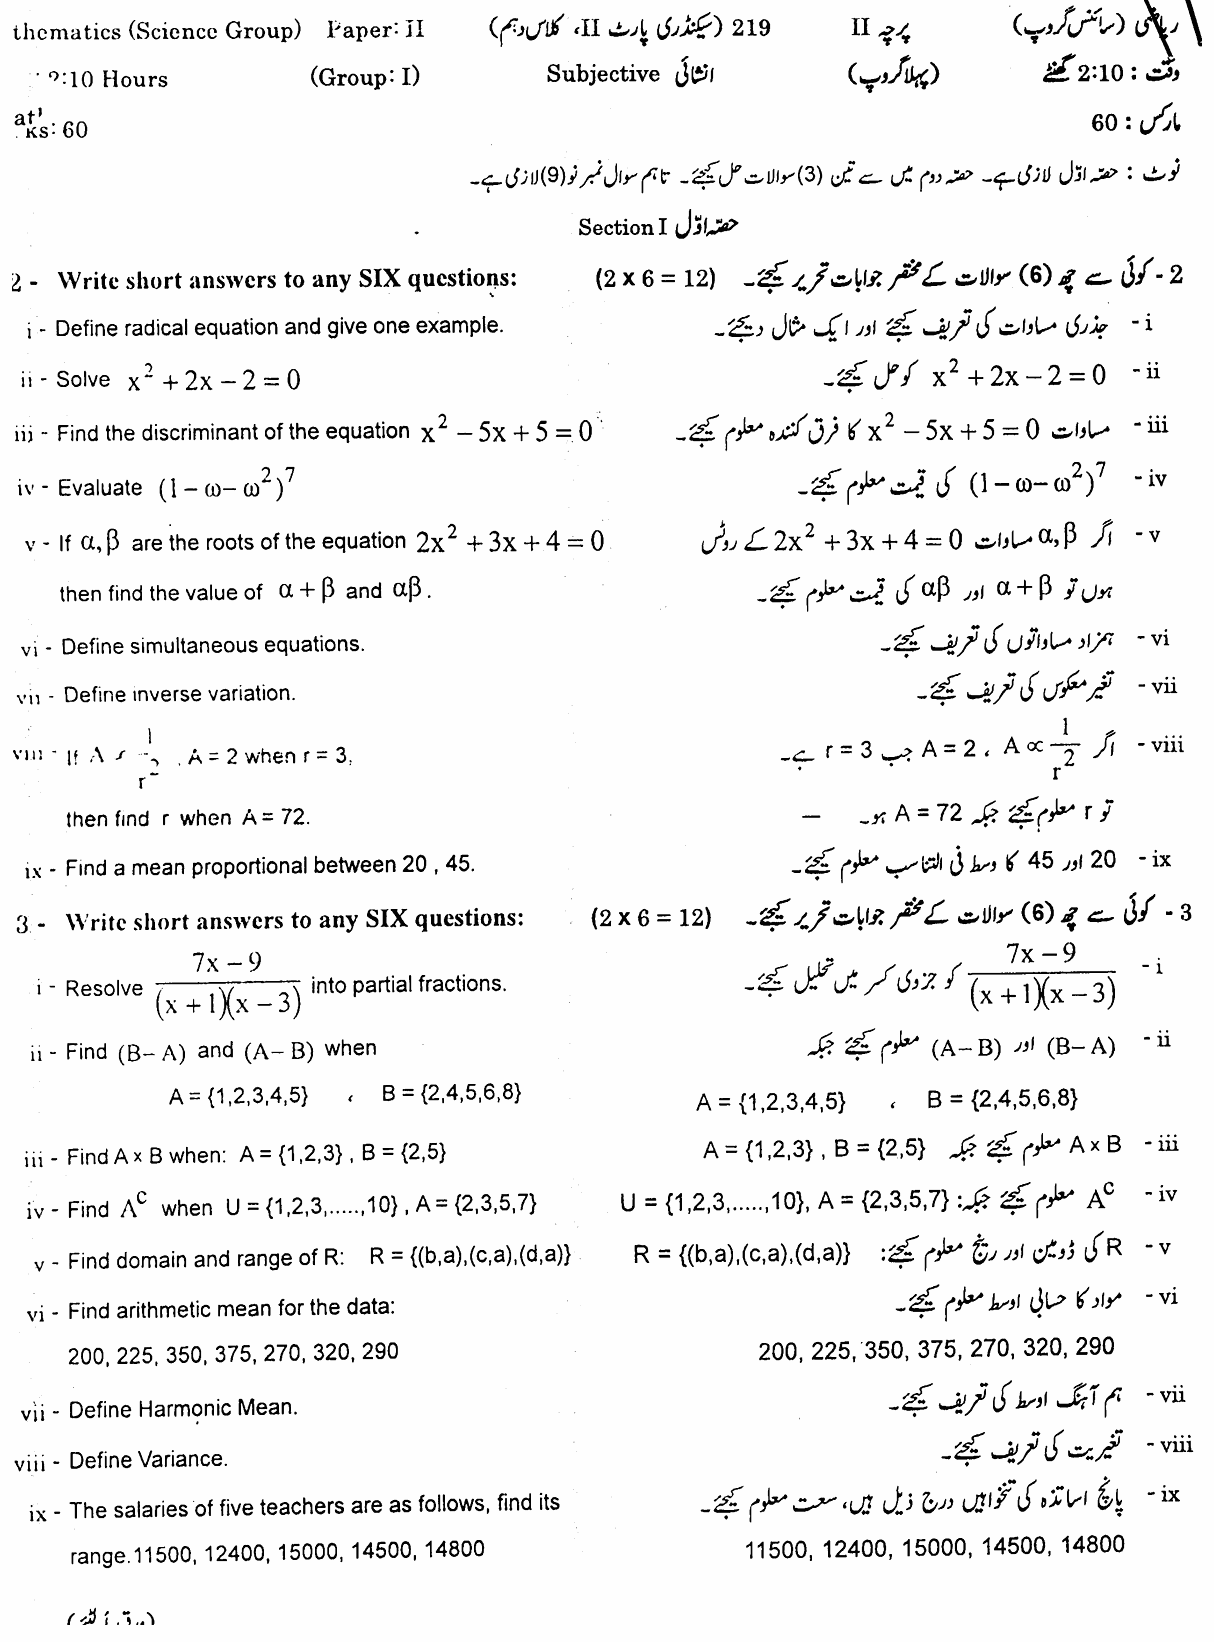 10th Class Mathematics Paper 2019 Gujranwala Board Subjective Group 1